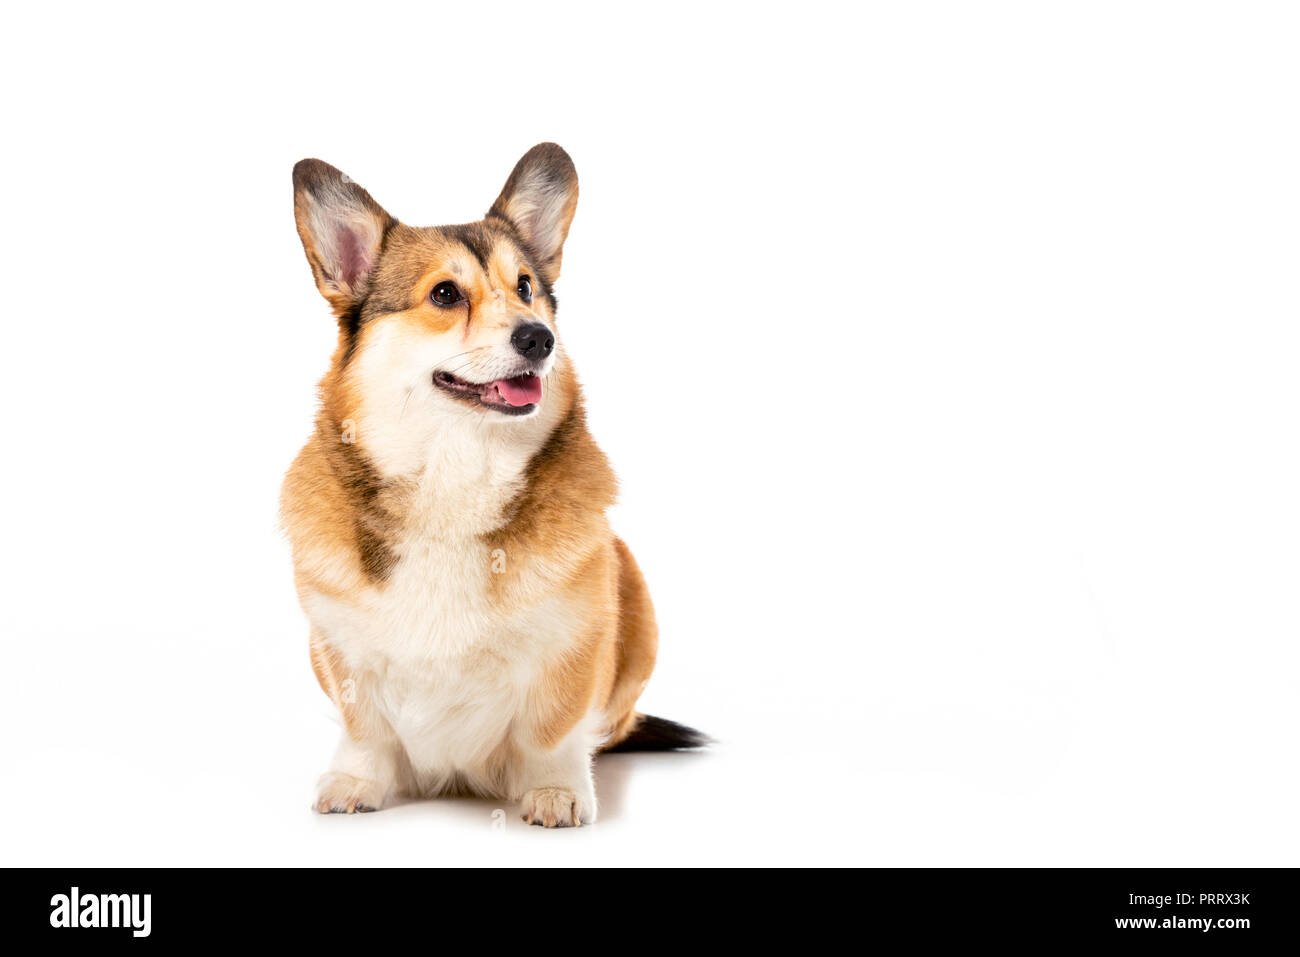 cute welsh corgi pembroke looking away isolated on white background - Stock Image